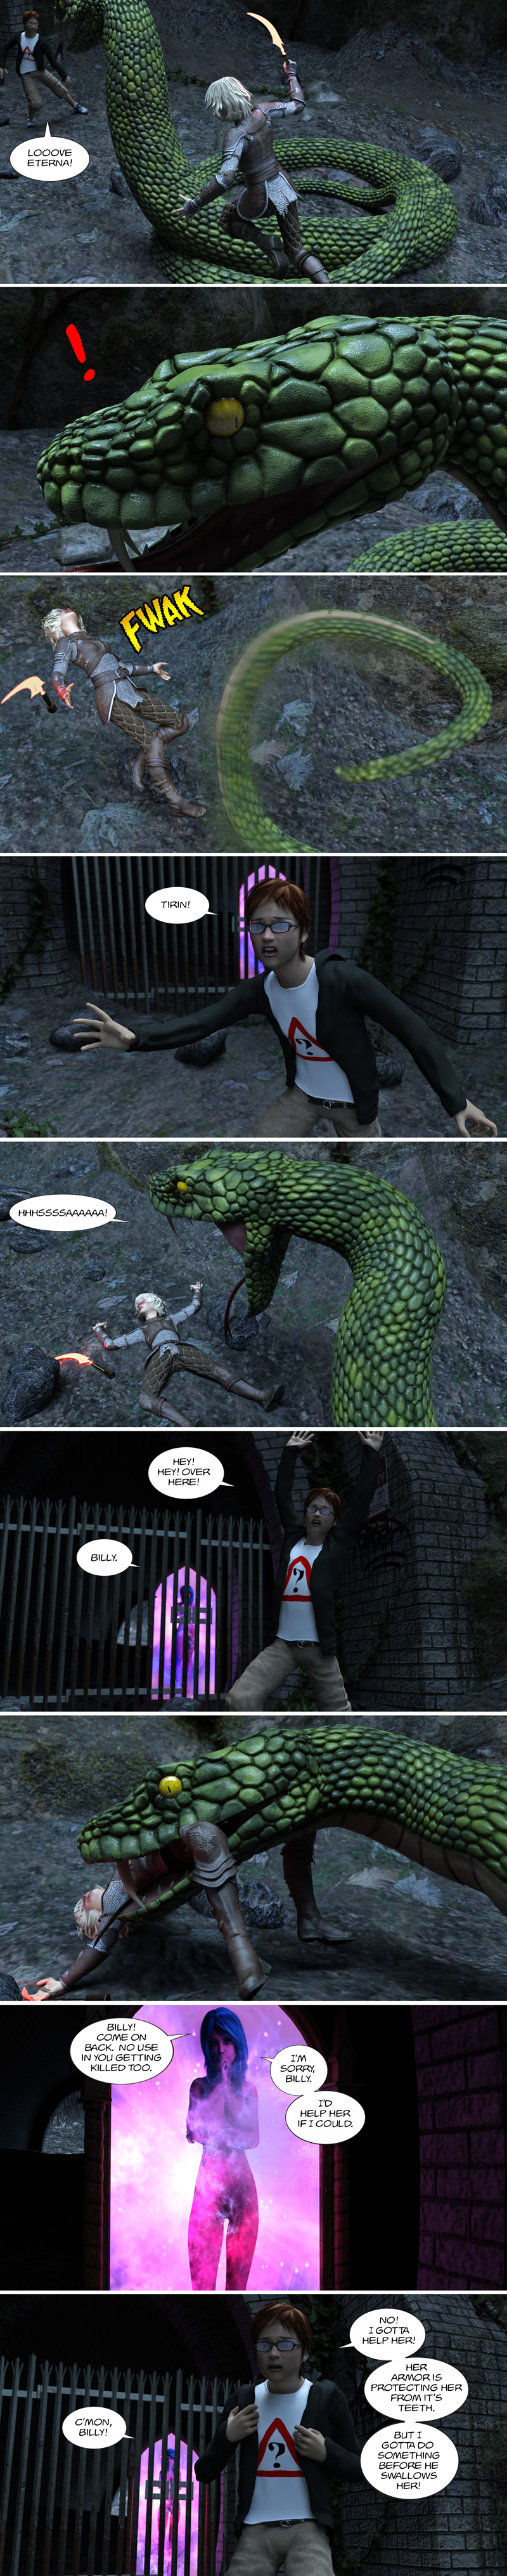 Chapter 13, page 6 – serpent battle